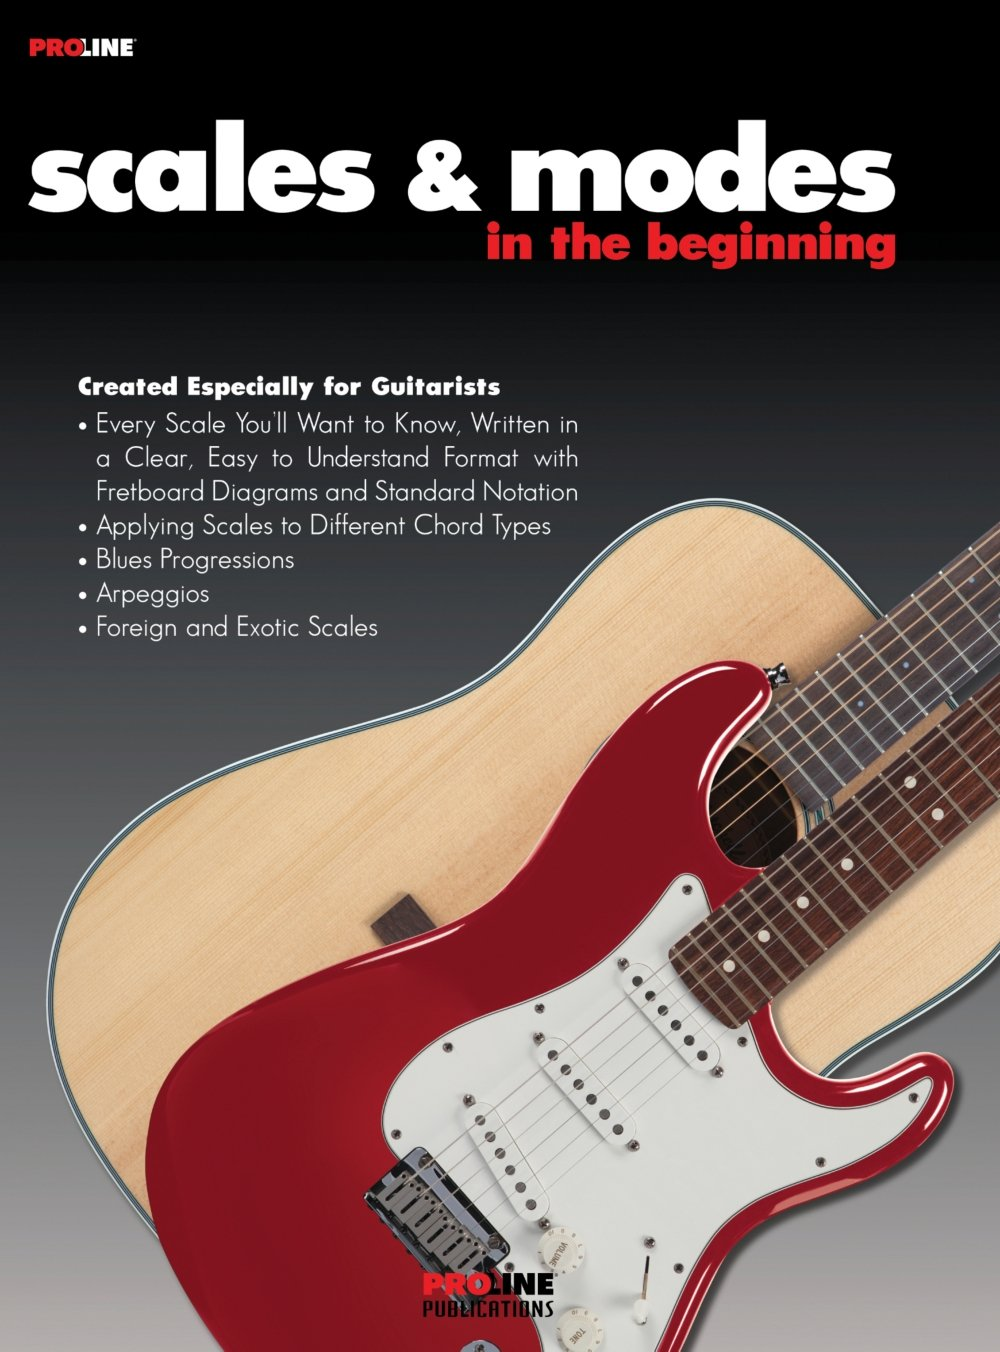 The Quick Guide to Scales and Modes for all Jazz Guitarists